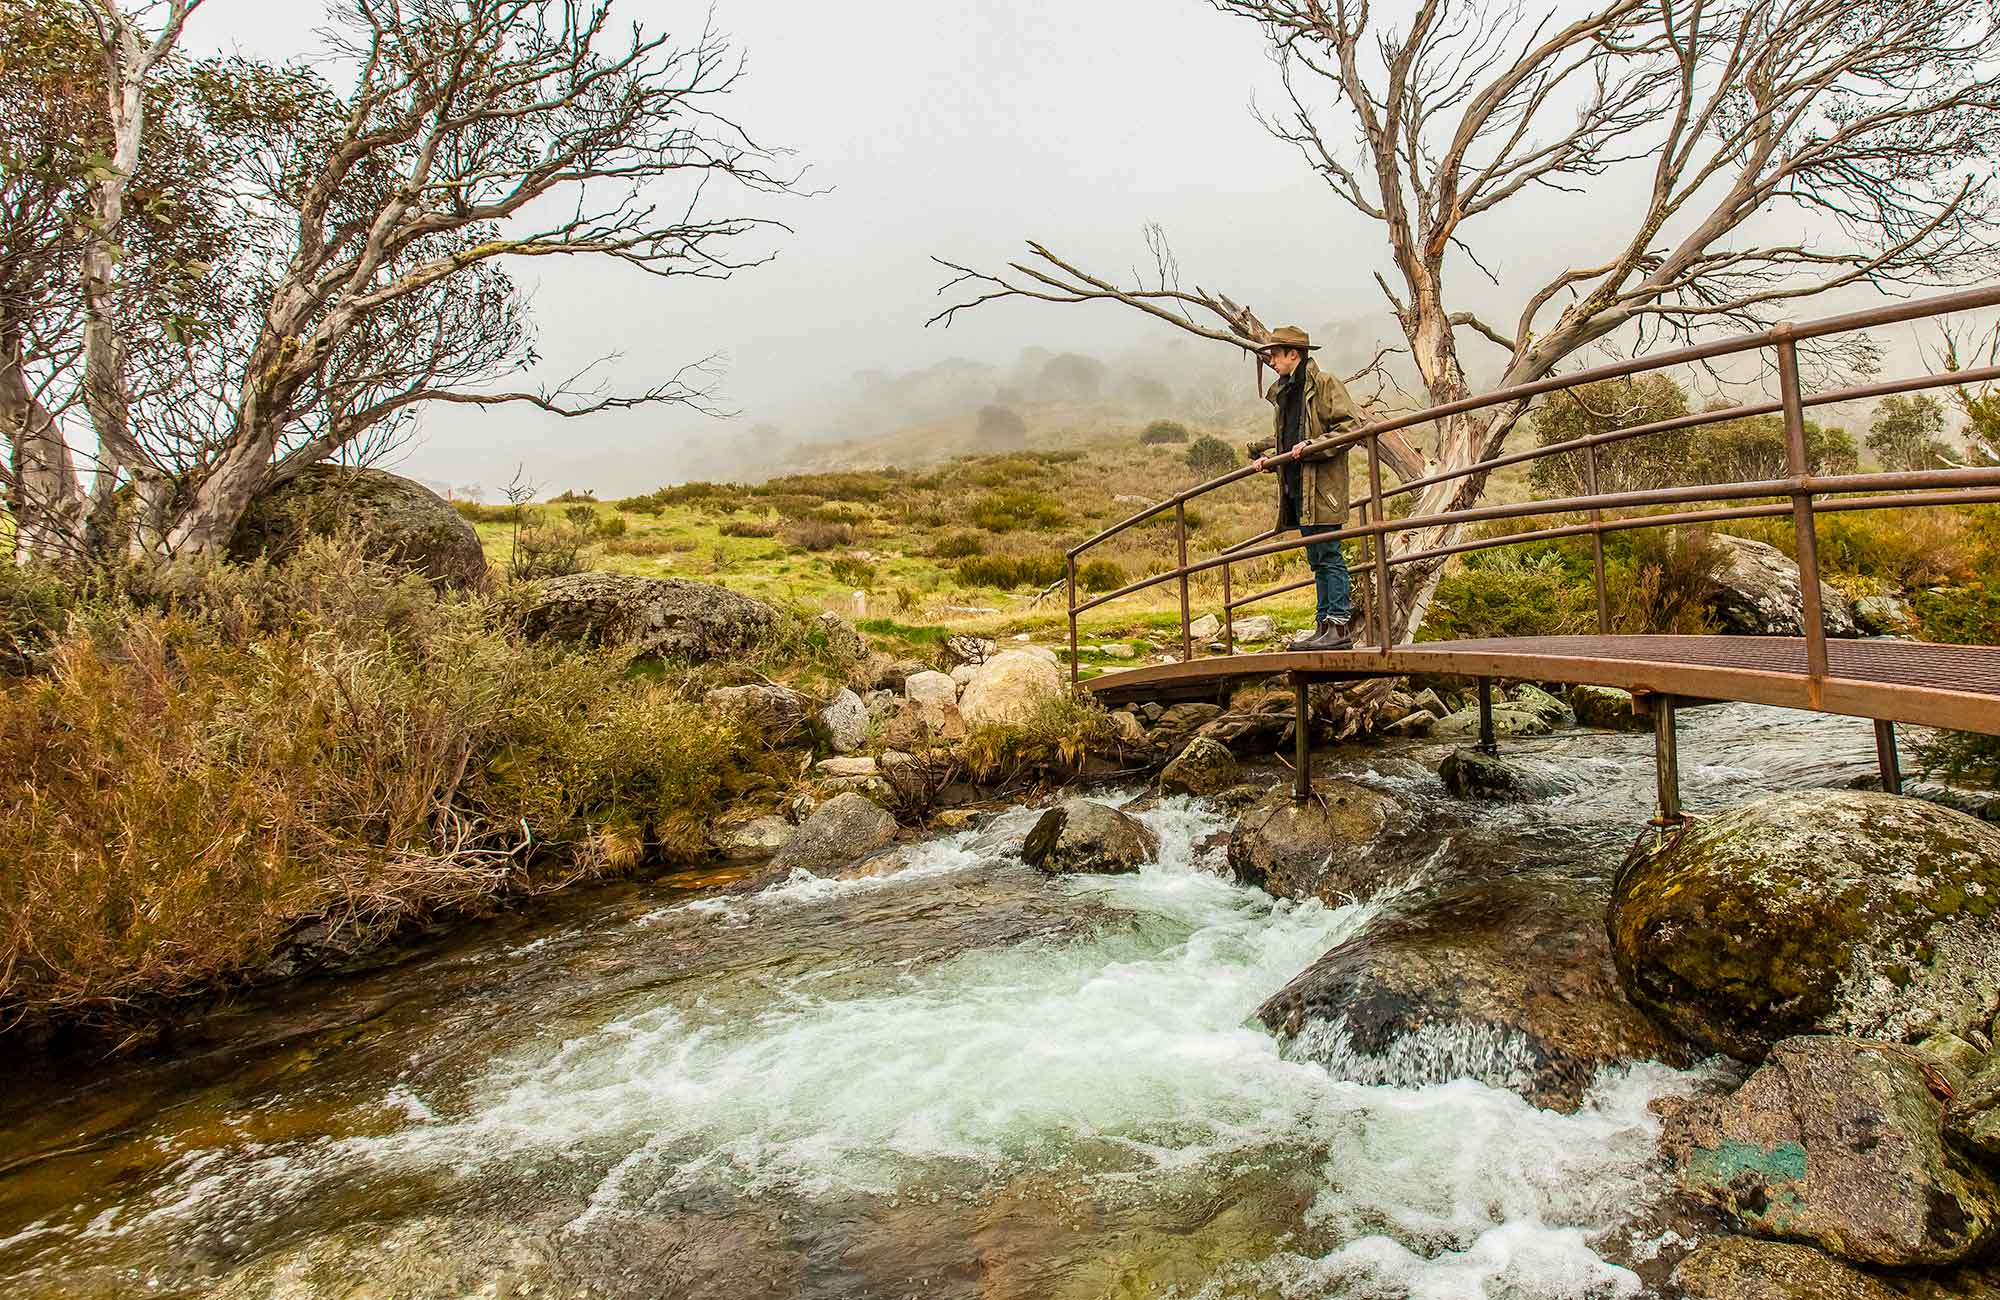 Dead Horse Gap walking track, Kosciuszko National Park. Photo: Murray Vanderveer